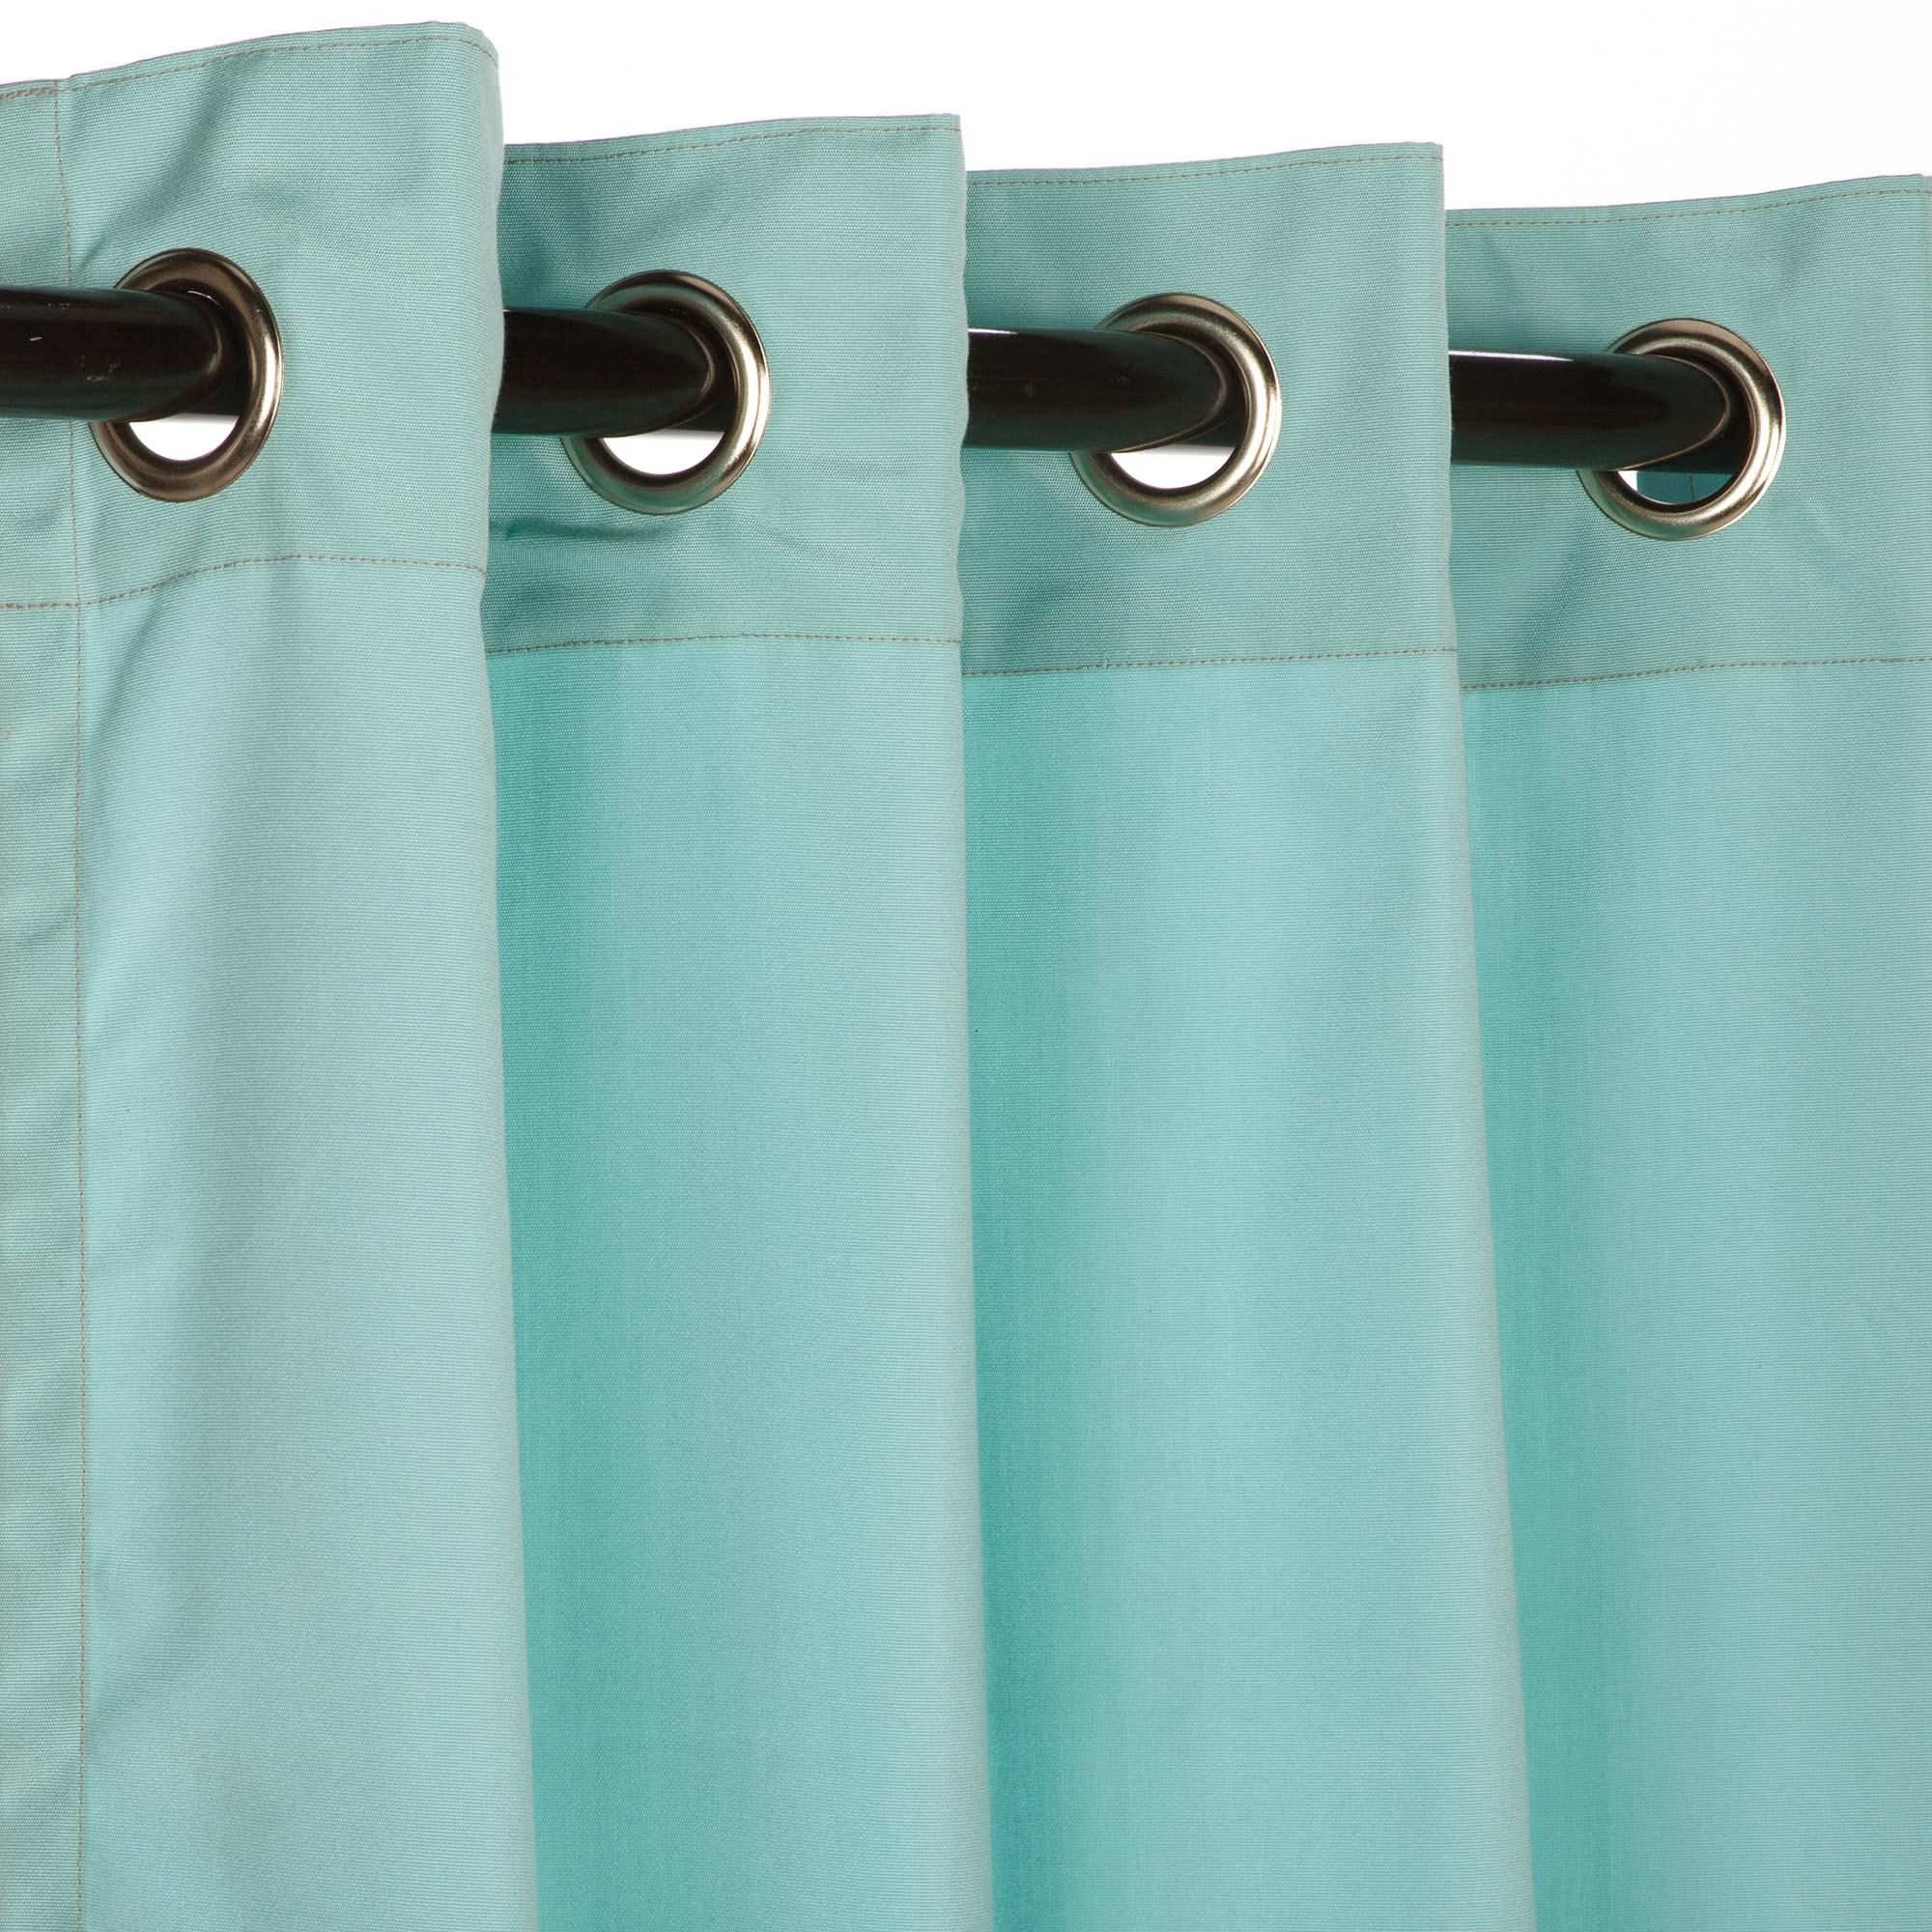 Striped outdoor curtains - Sunbrella Outdoor Curtain With Nickel Grommets Canvas Glacier